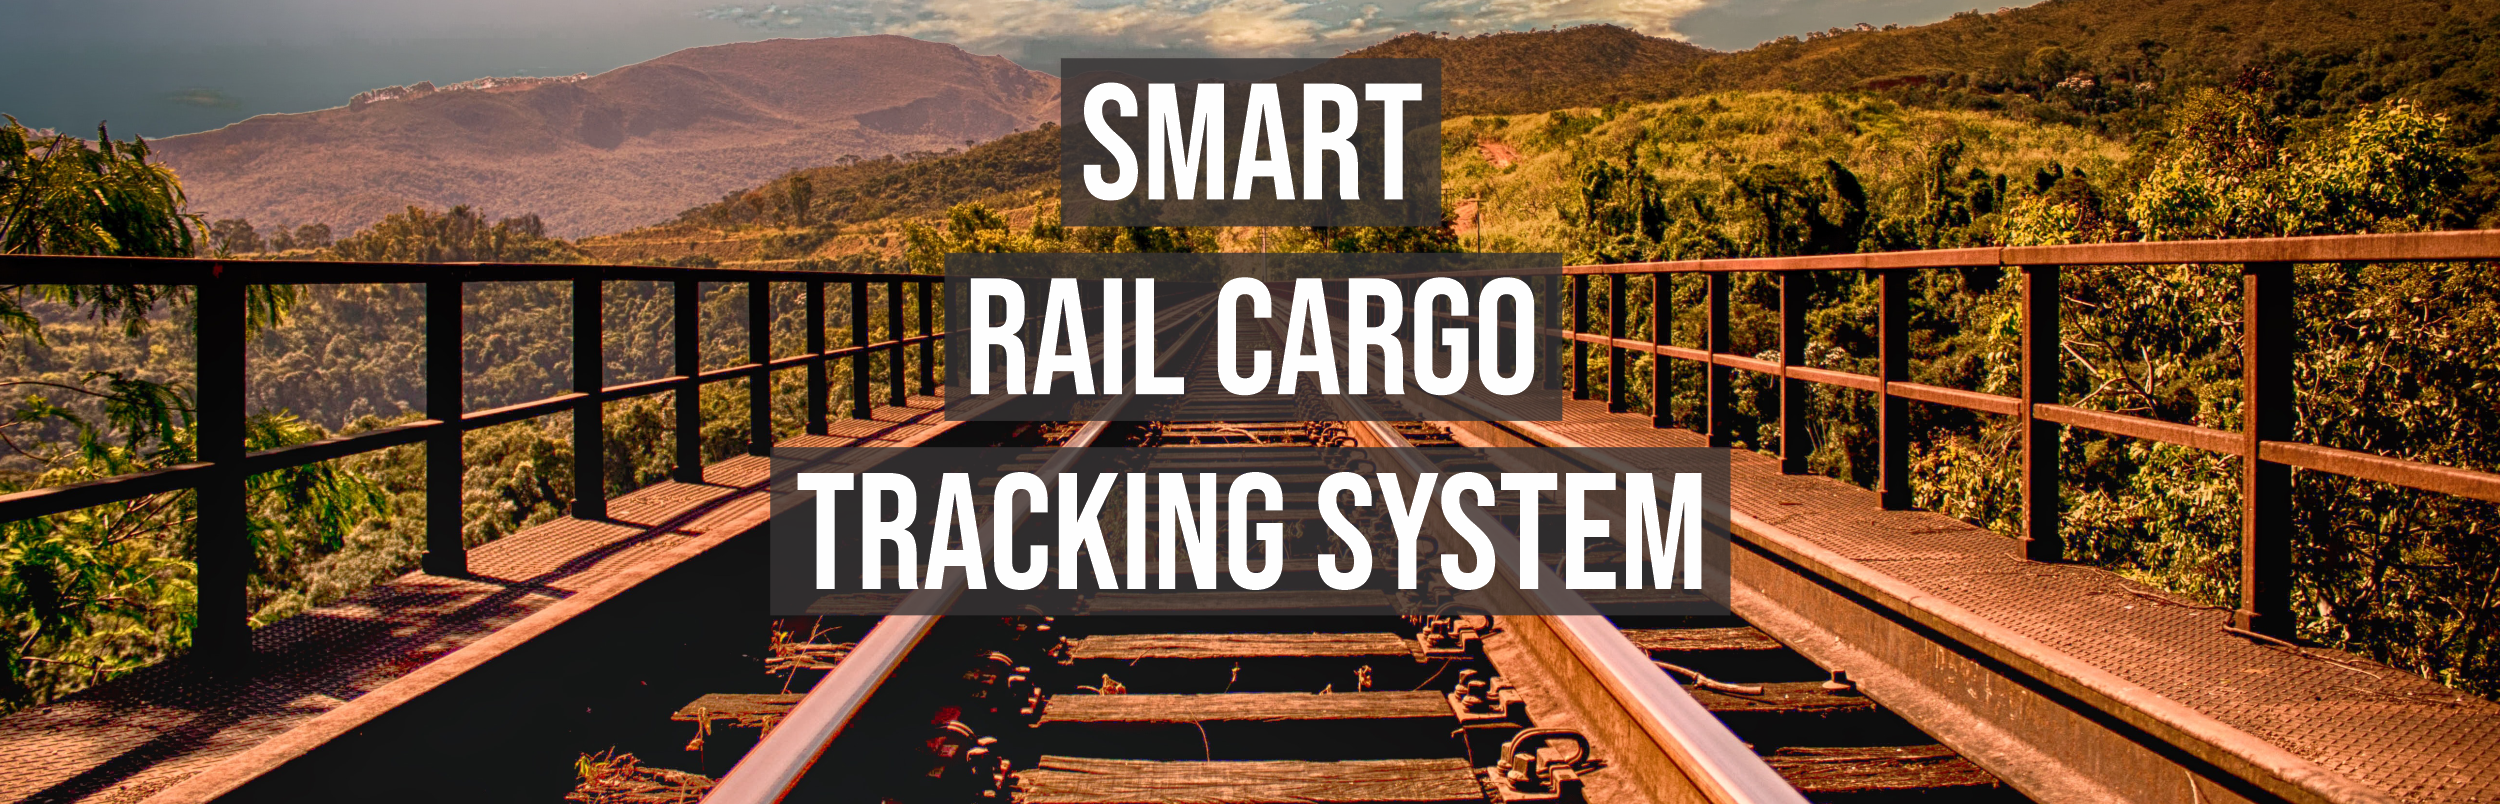 Invest in a Smart Rail Cargo Tracking System — It's About Time